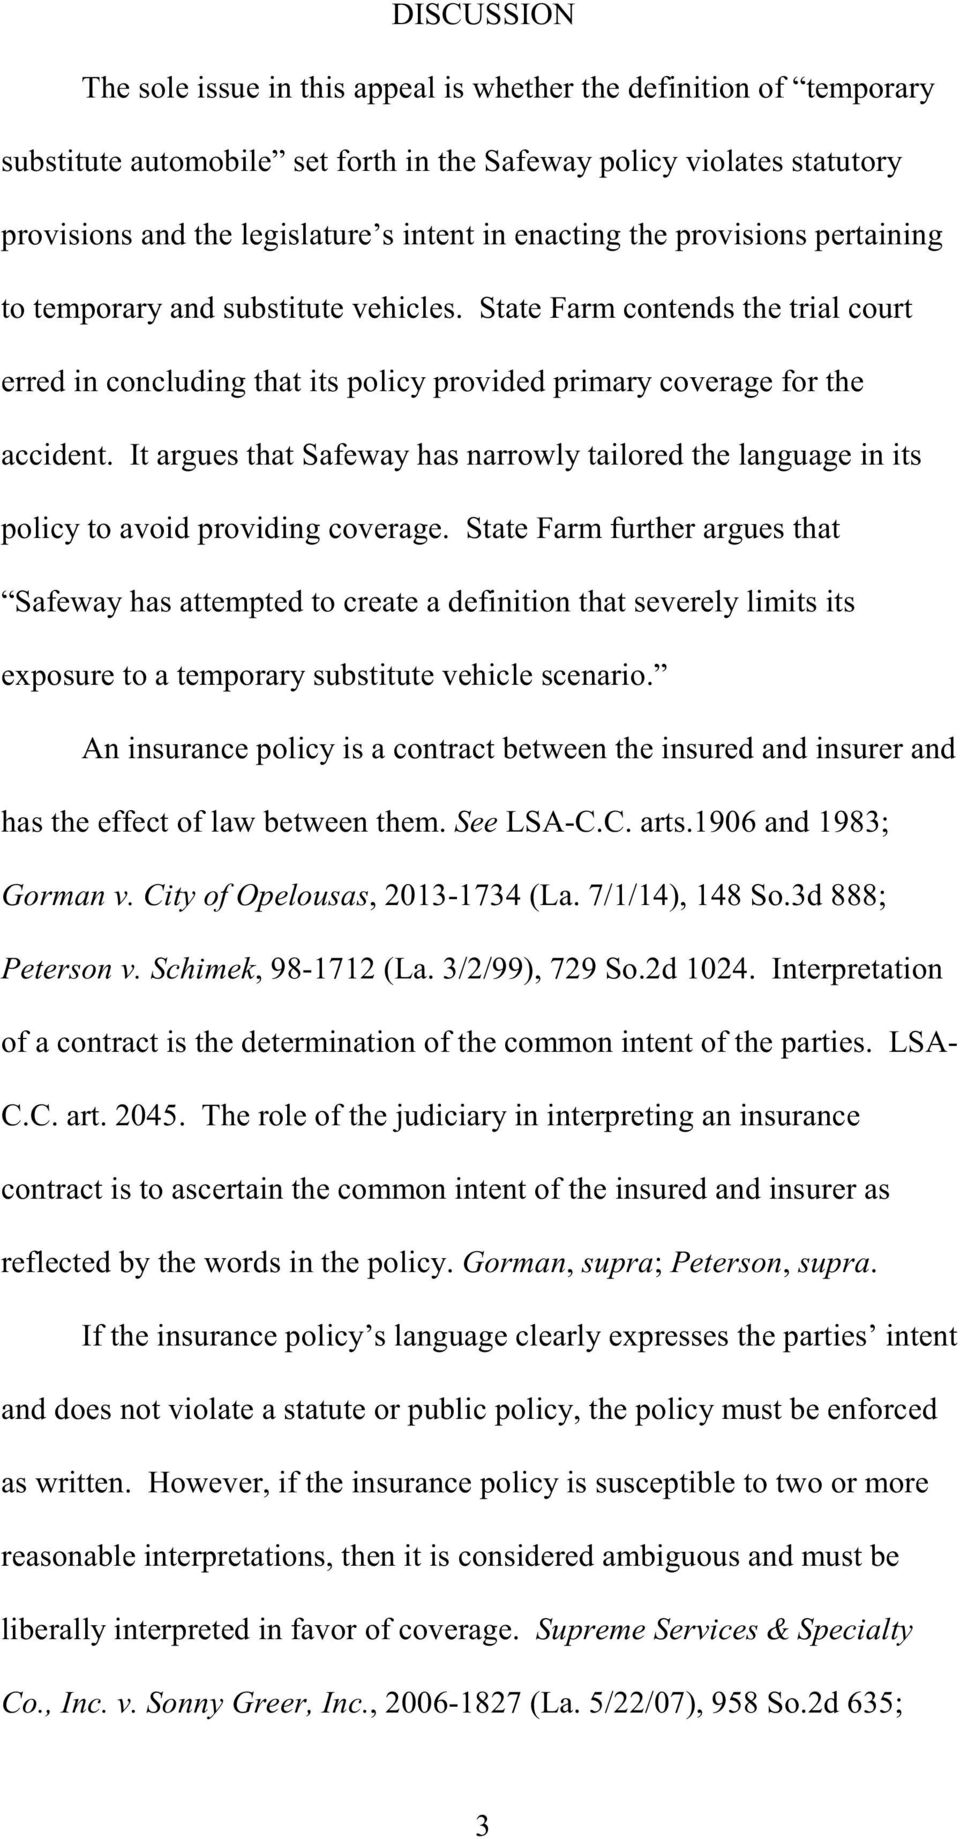 It argues that Safeway has narrowly tailored the language in its policy to avoid providing coverage.